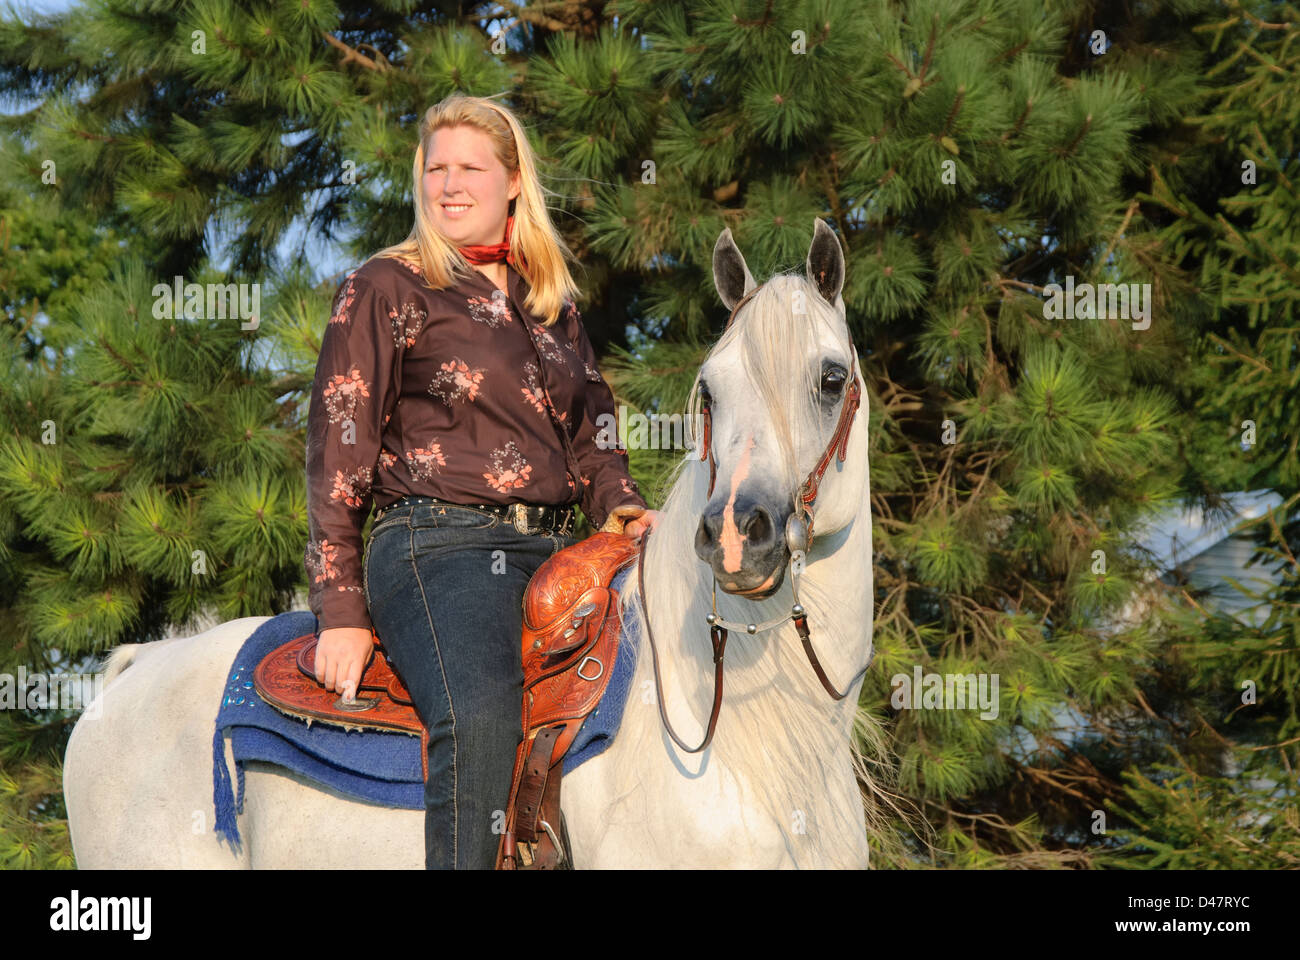 Woman Horseback Riding In Evening Summer Light Side View Still Pose Stock Photo Alamy